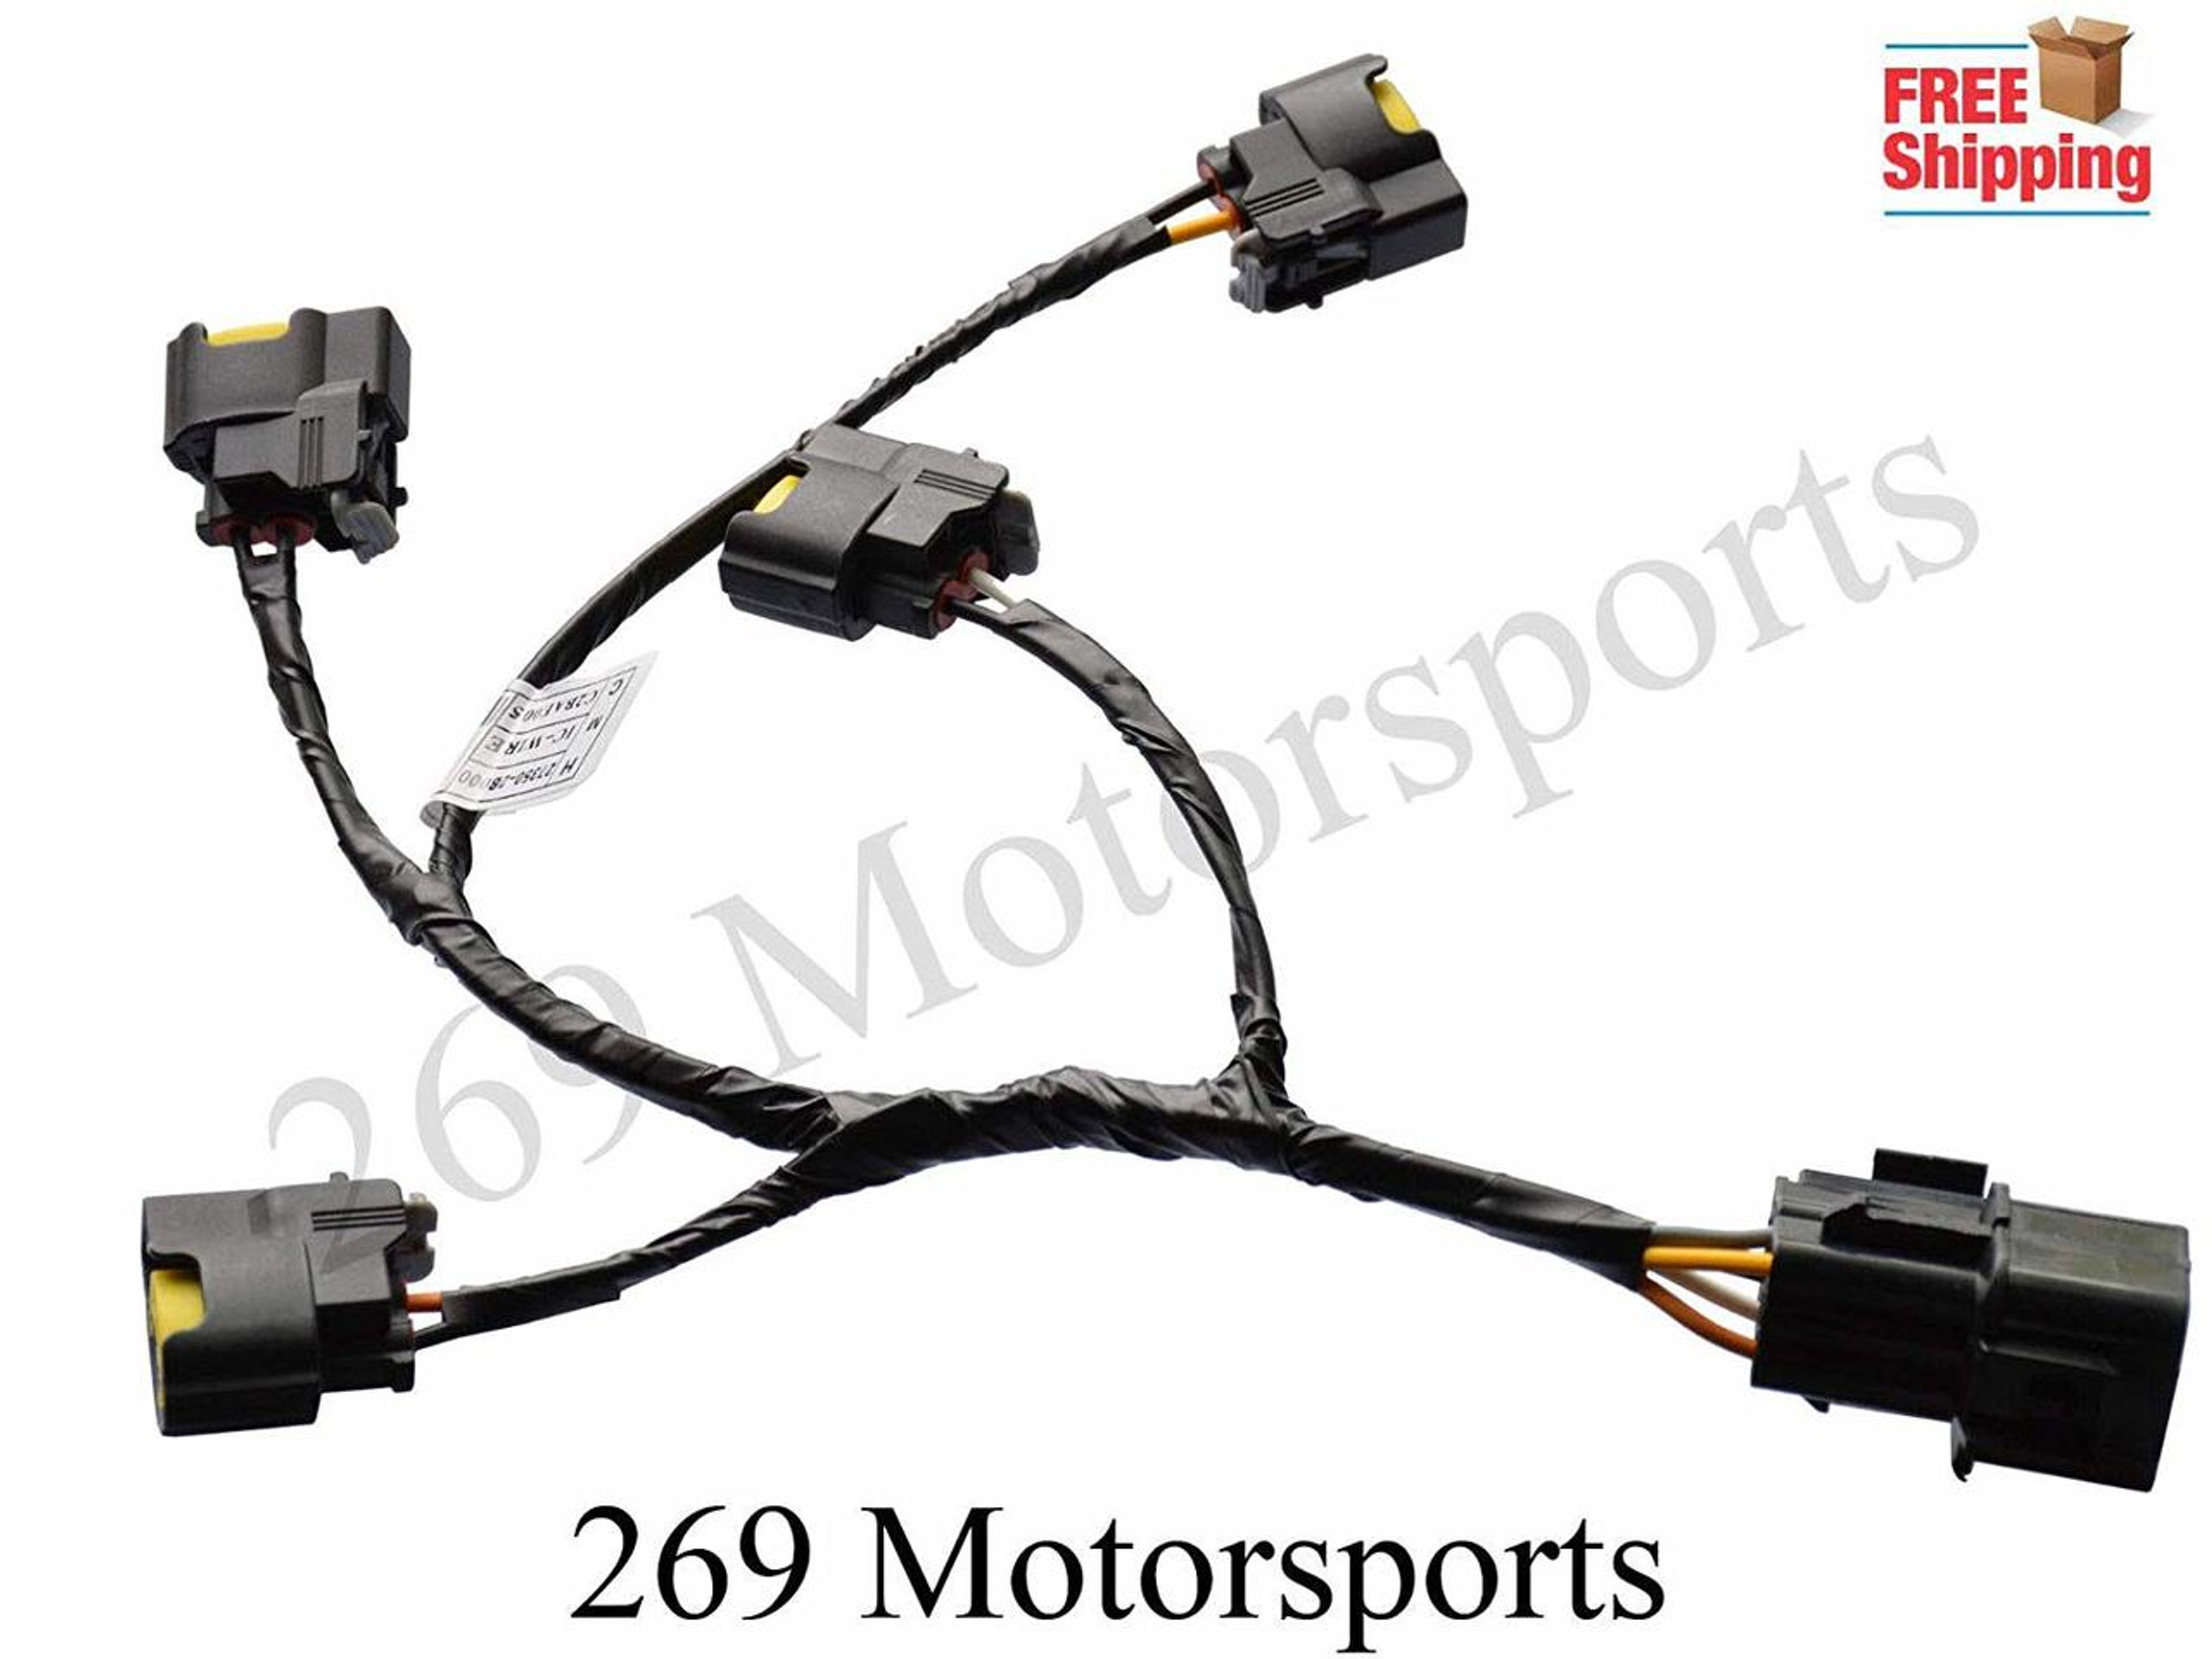 Ignition Coil Wire Harness For 10-14 Veloster Rio Soul 1